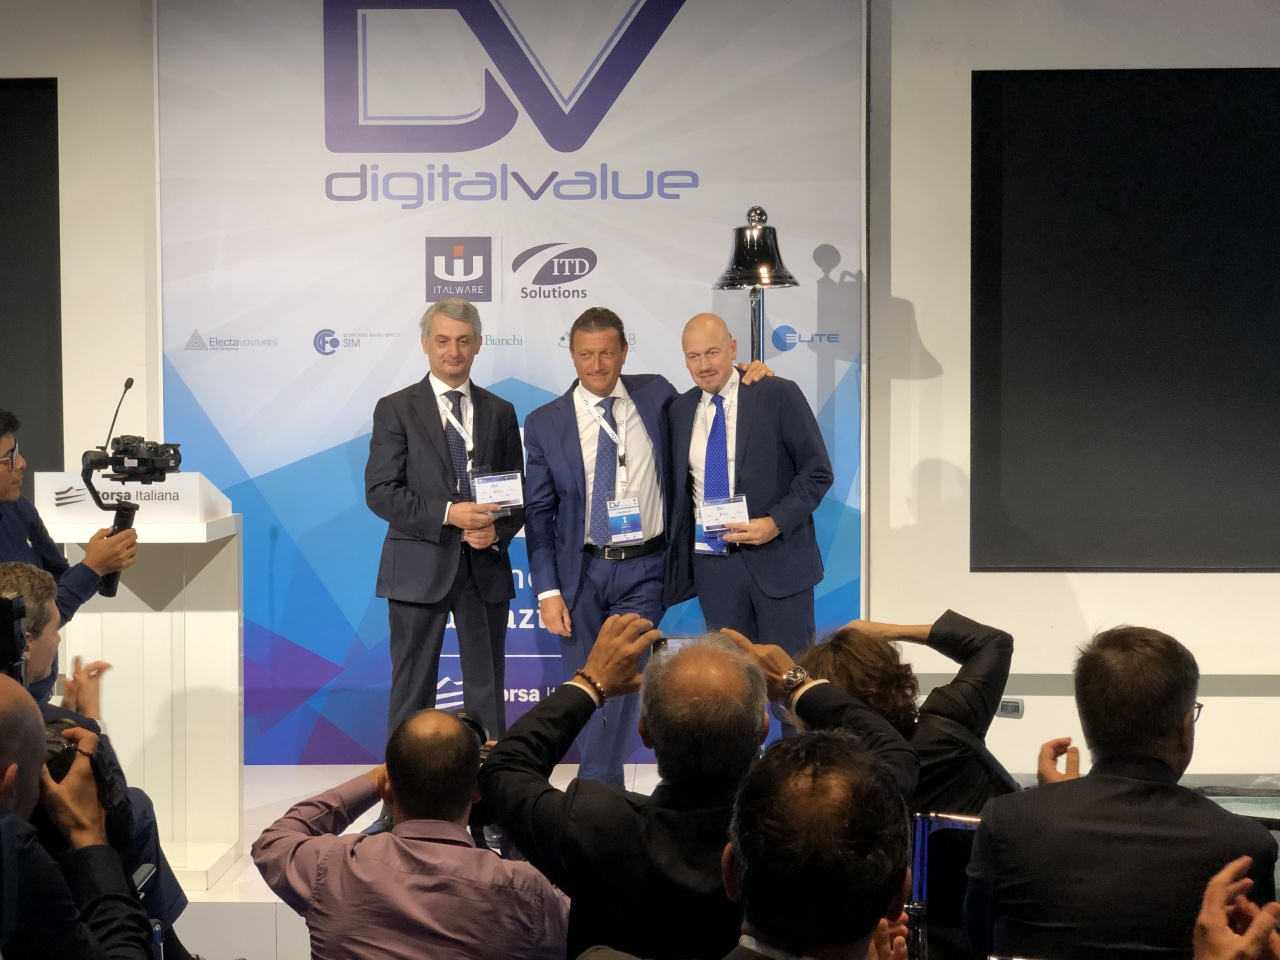 digitalvalue2